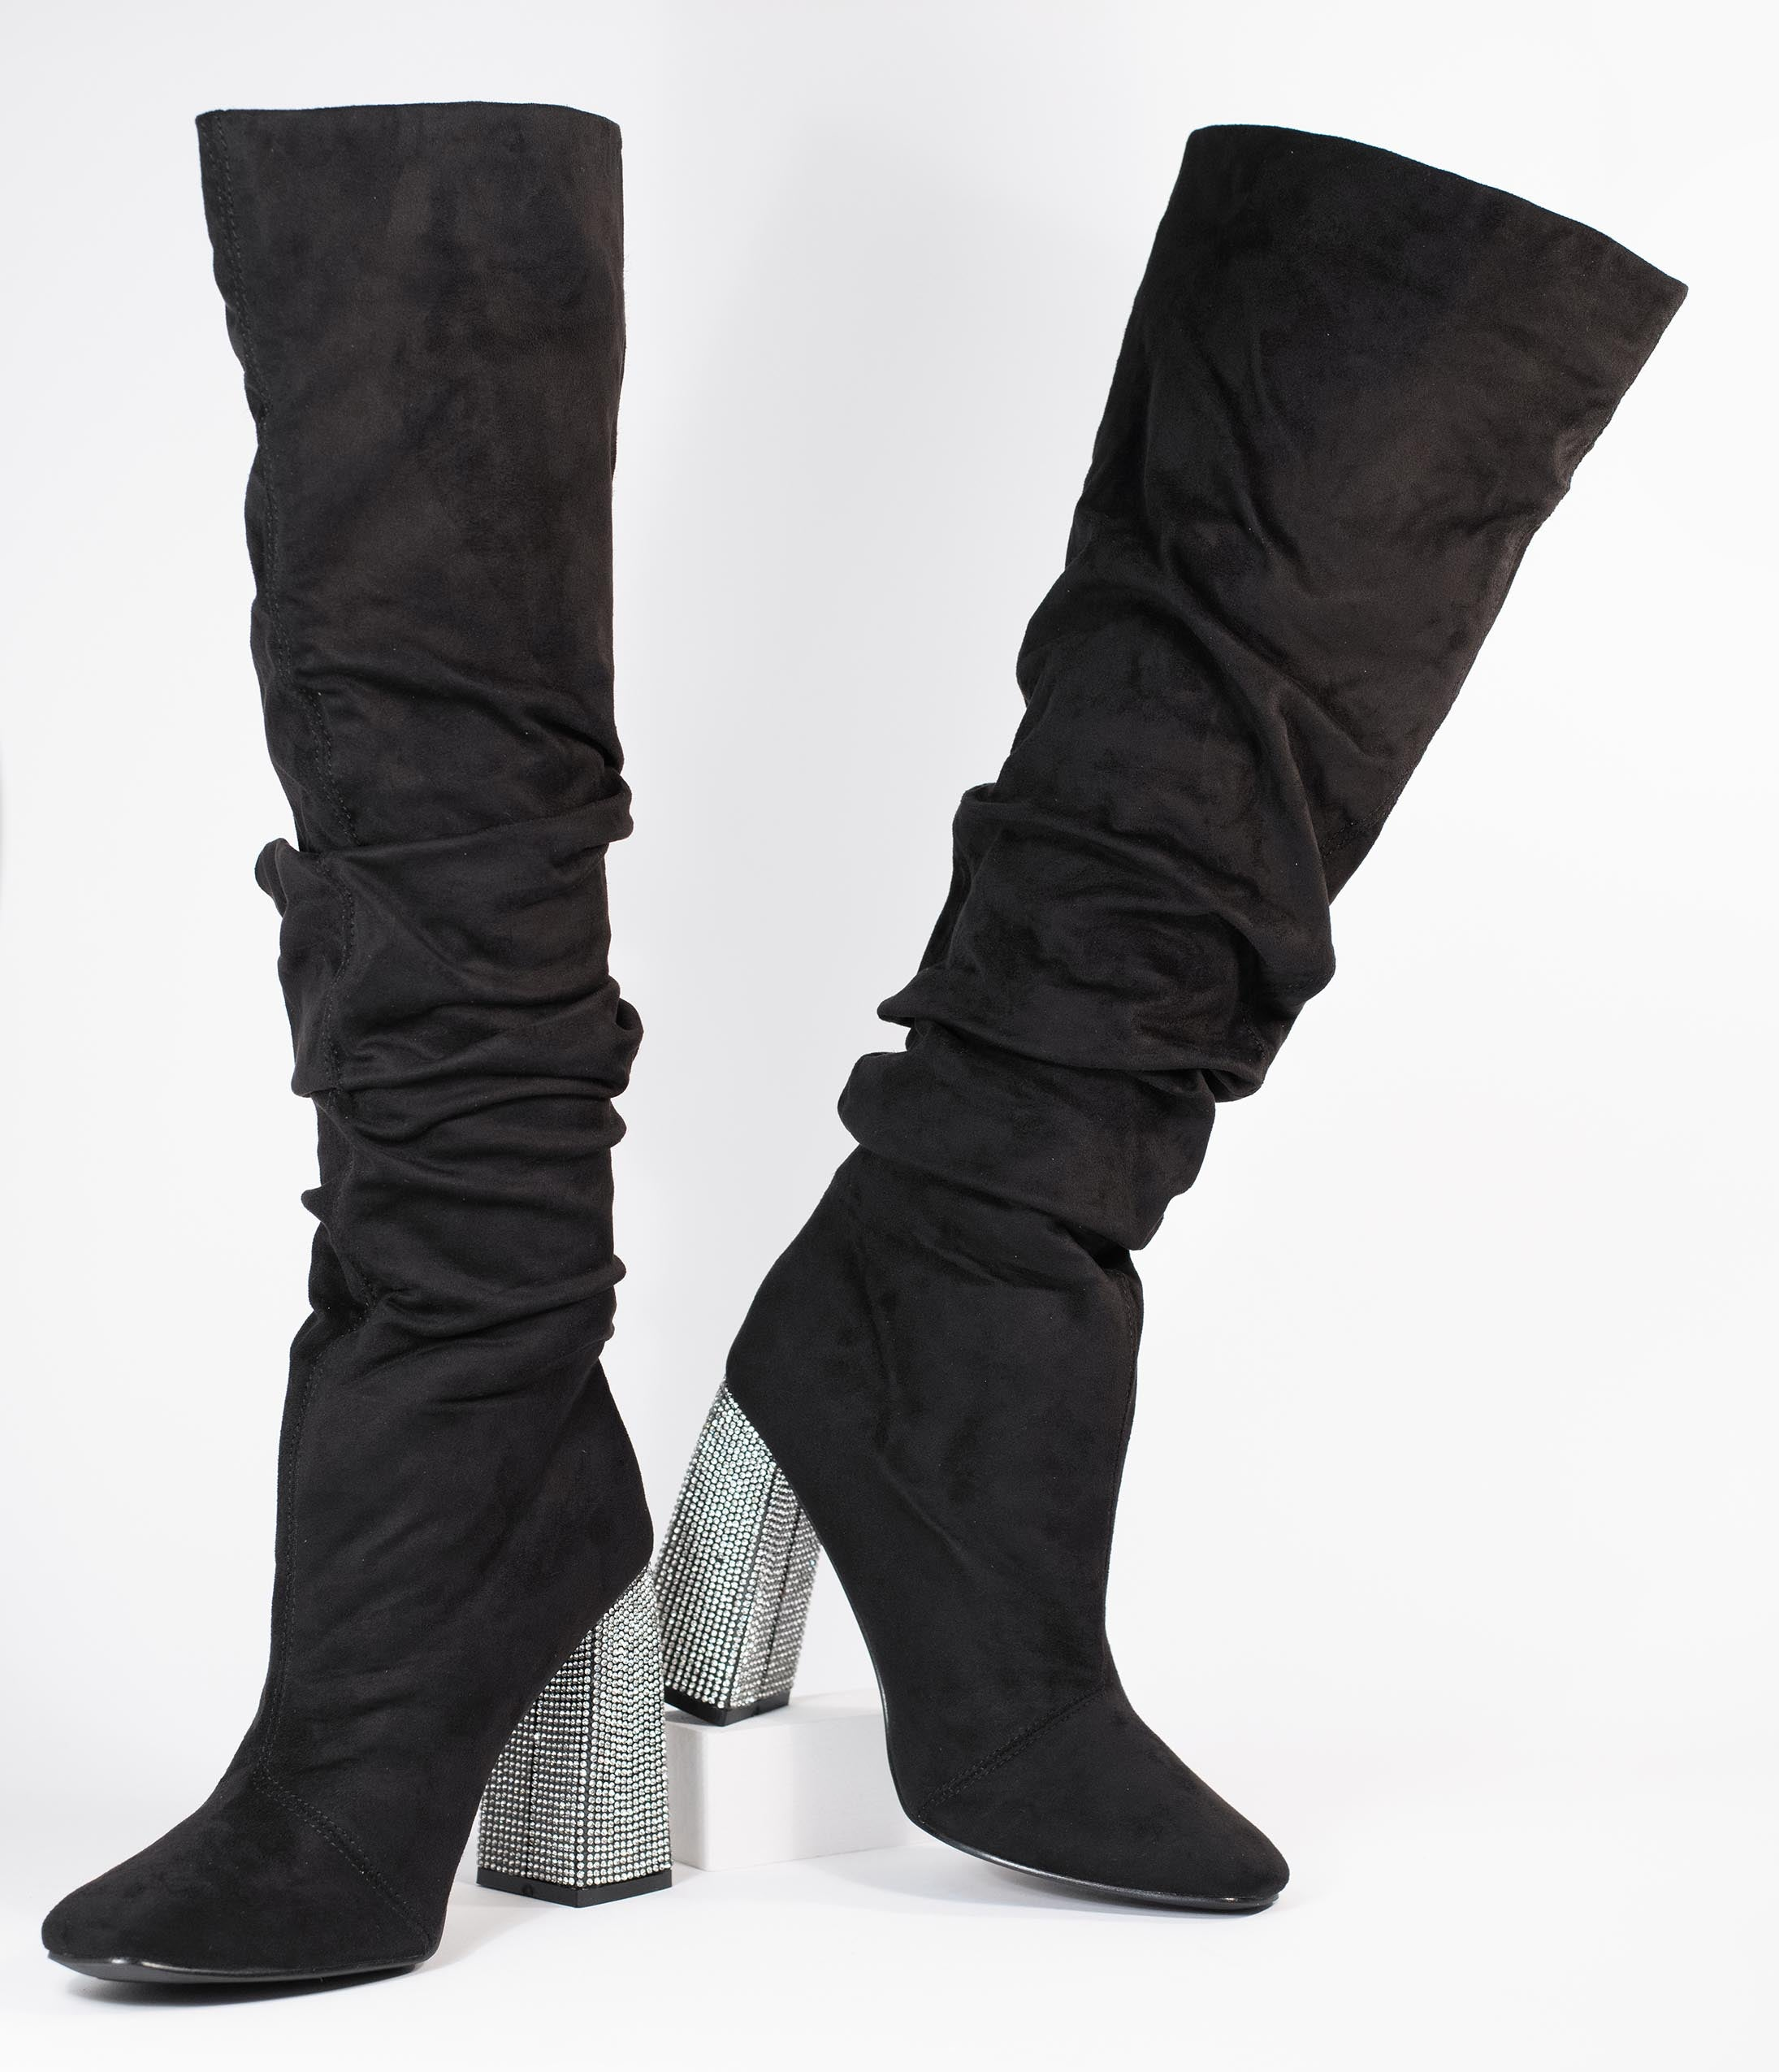 Vintage Boots, Retro Boots Black Suede  Rhinestone Slouchy Knee-High Boots $88.00 AT vintagedancer.com